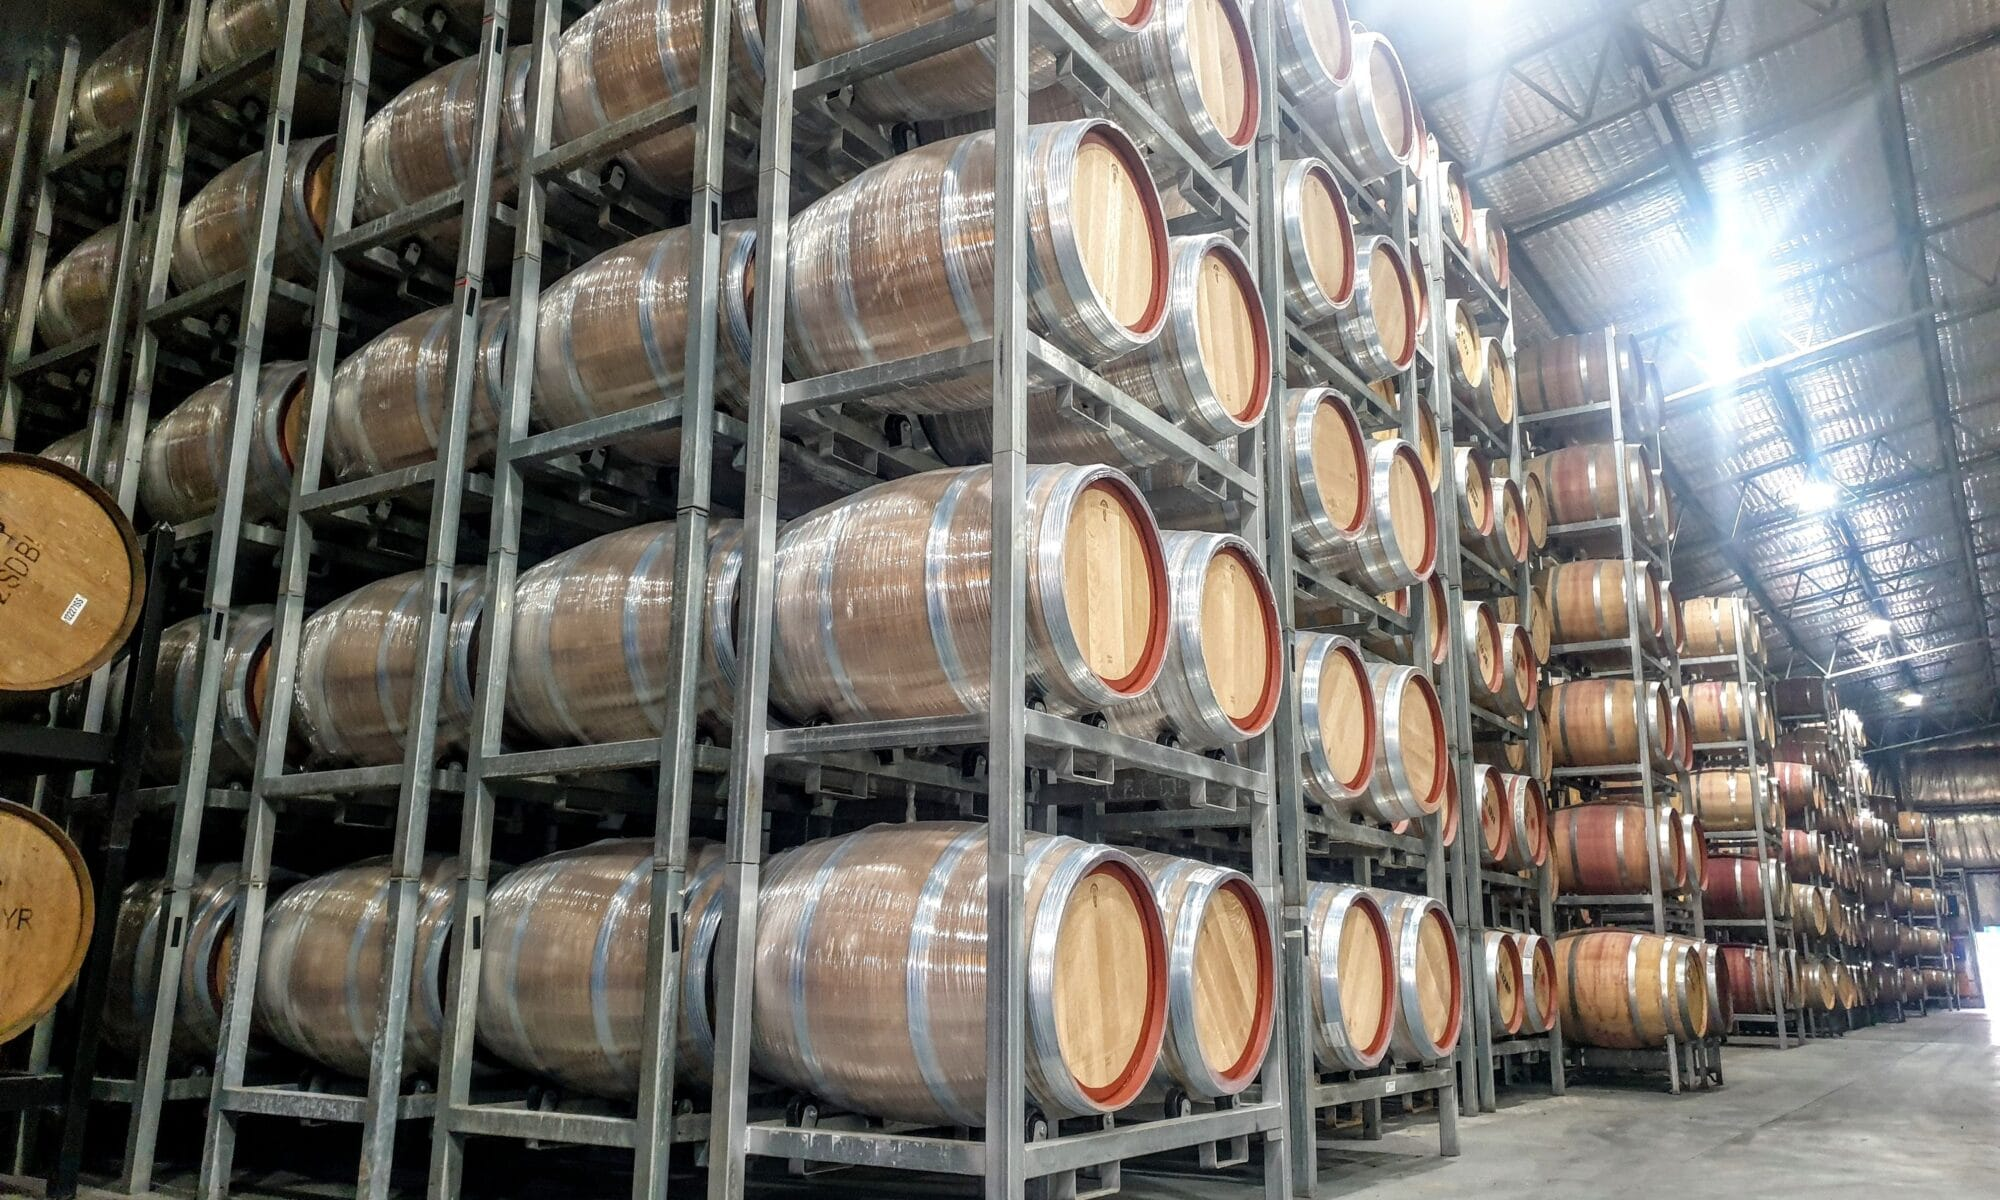 3_Things_You_Need_To_Know_About_Barrel_Storage